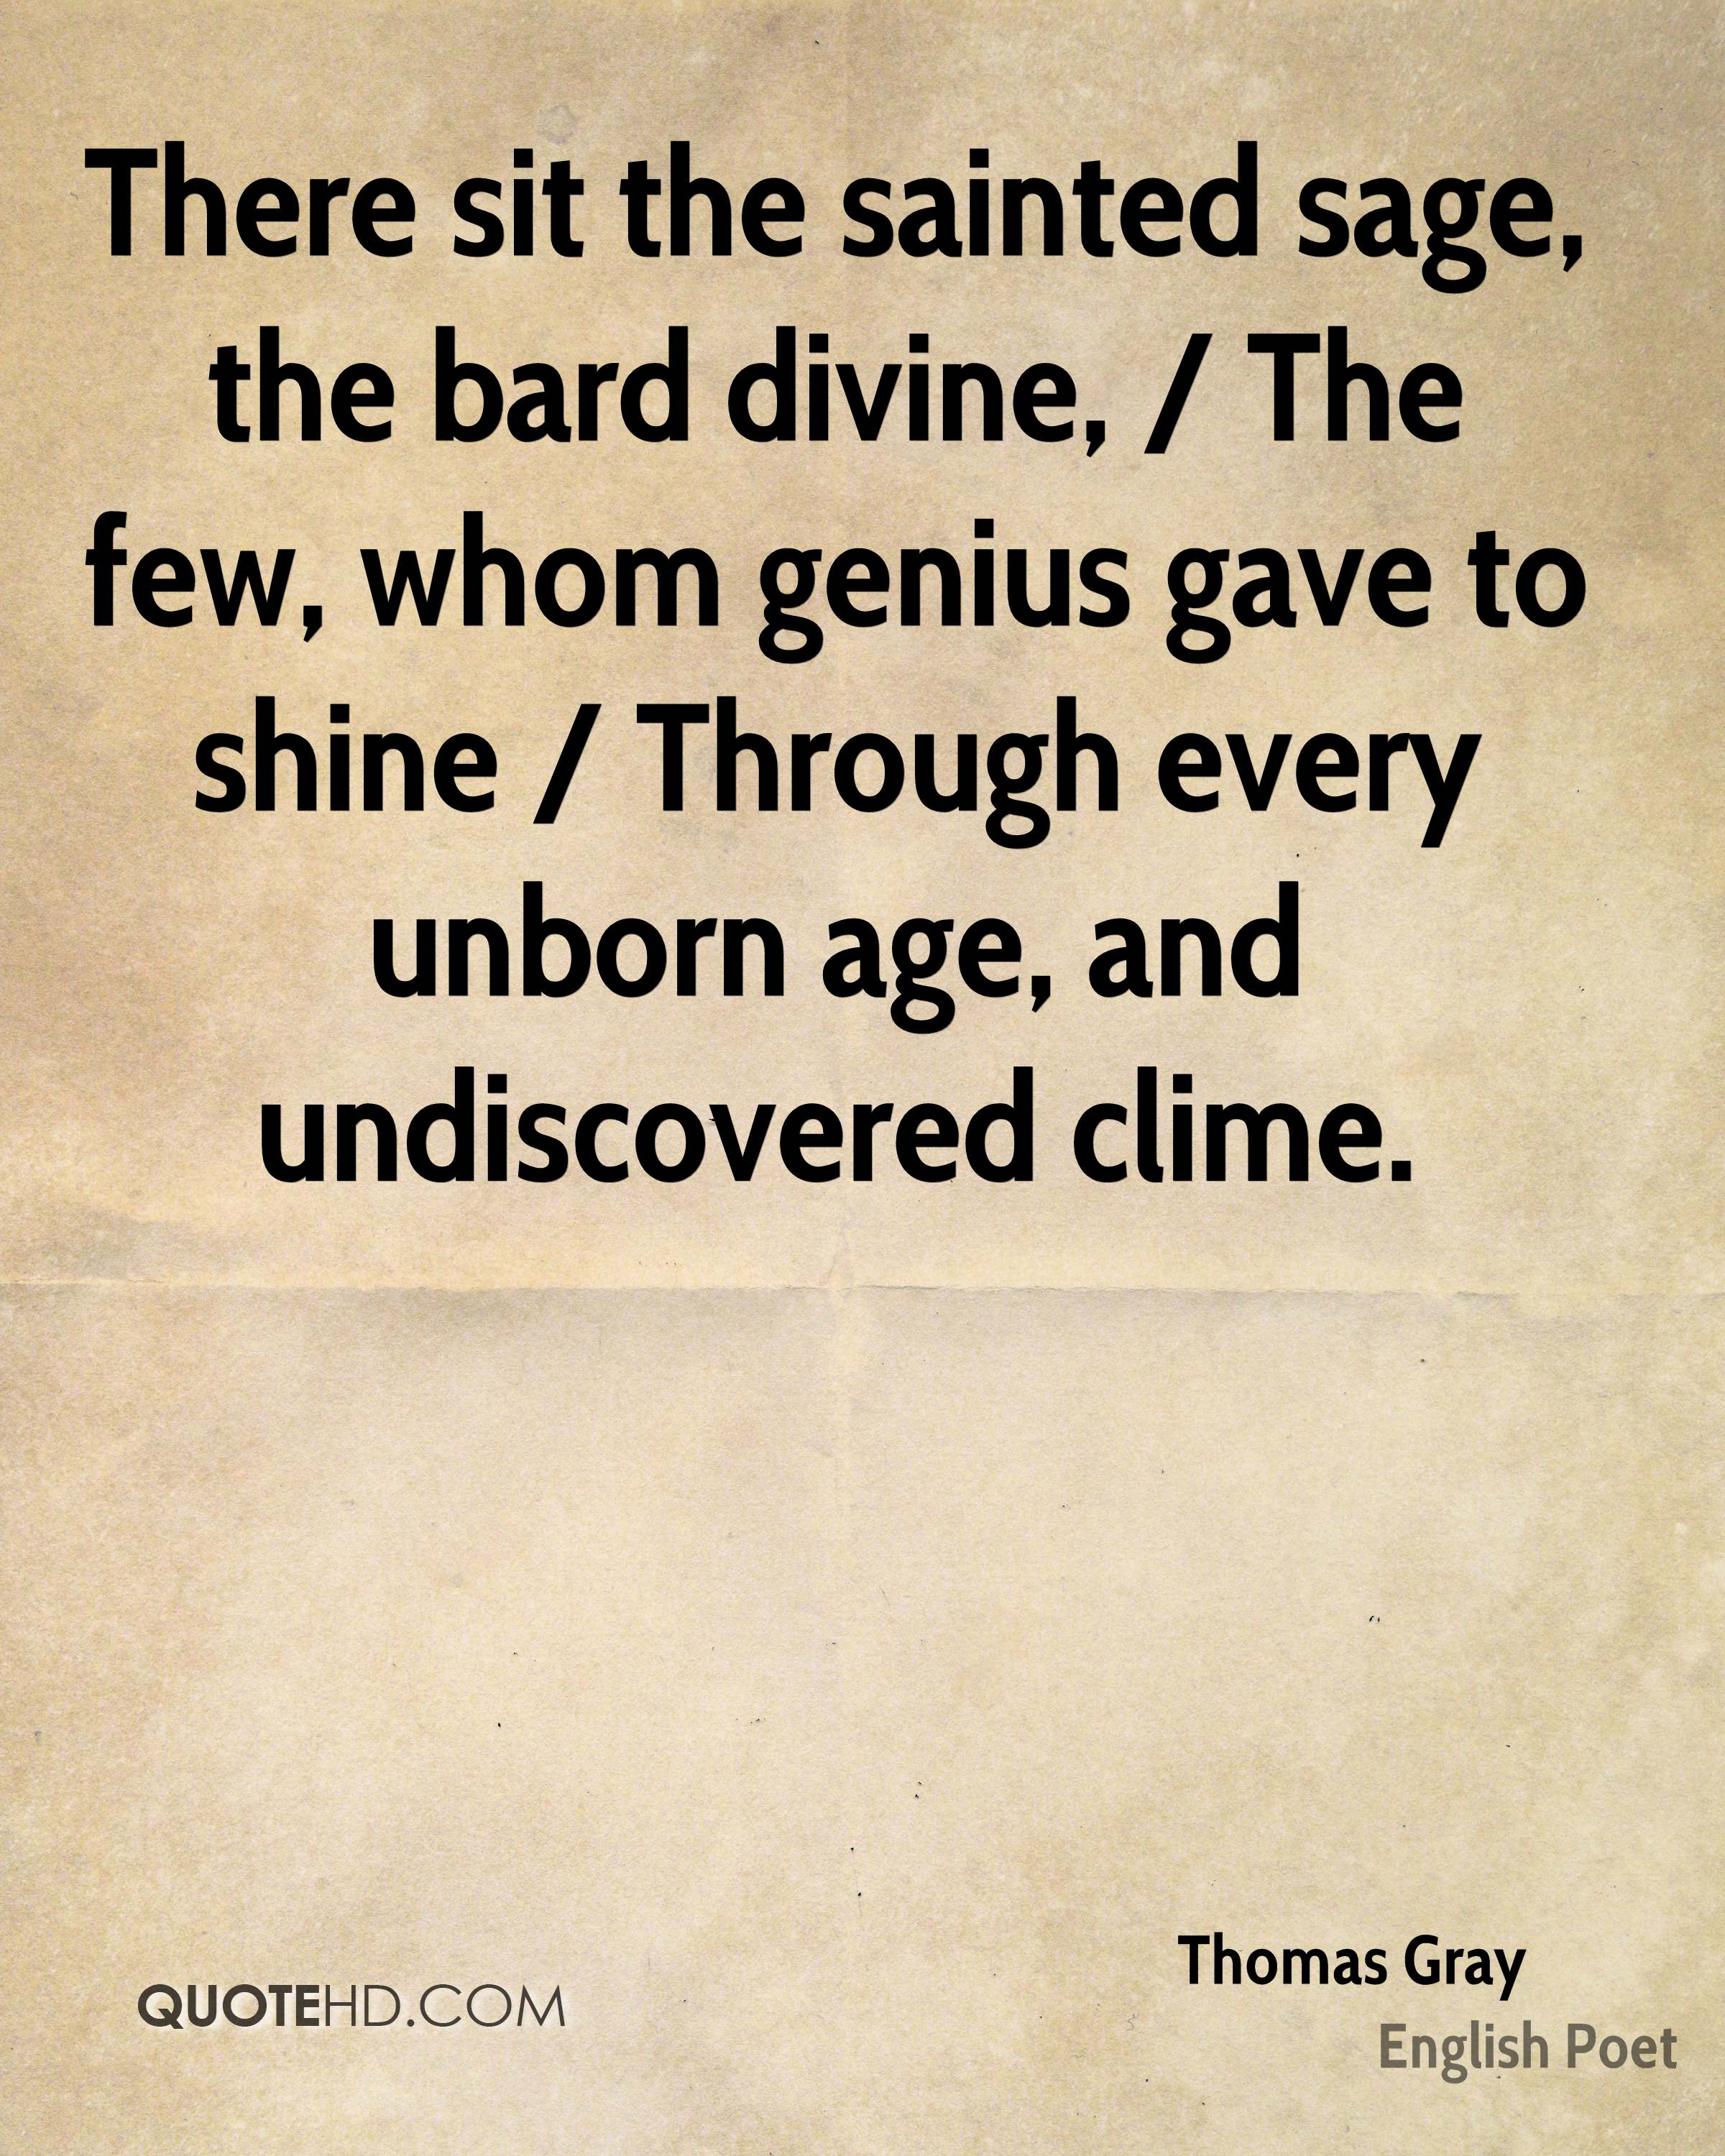 There sit the sainted sage, the bard divine, / The few, whom genius gave to shine / Through every unborn age, and undiscovered clime.